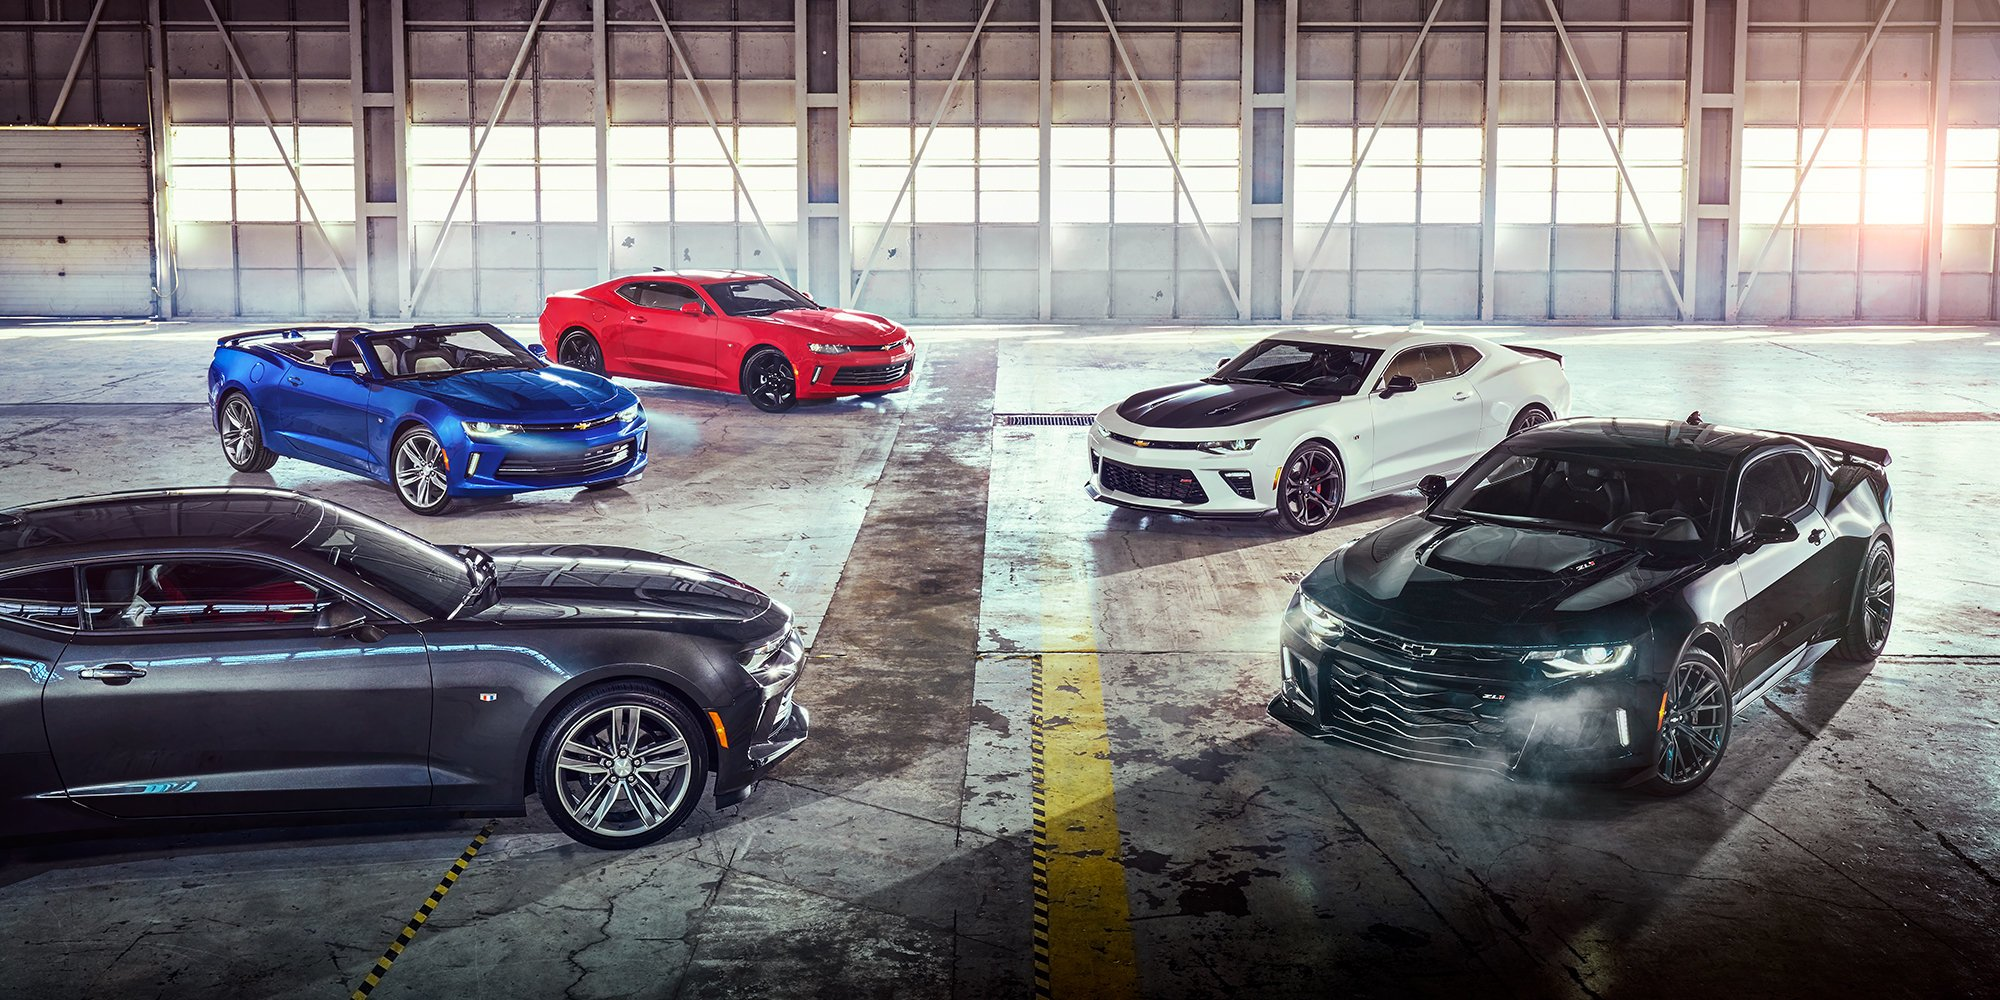 New Chevy Camaro Lease Deals and Finance Specials | Dry Ridge, KY